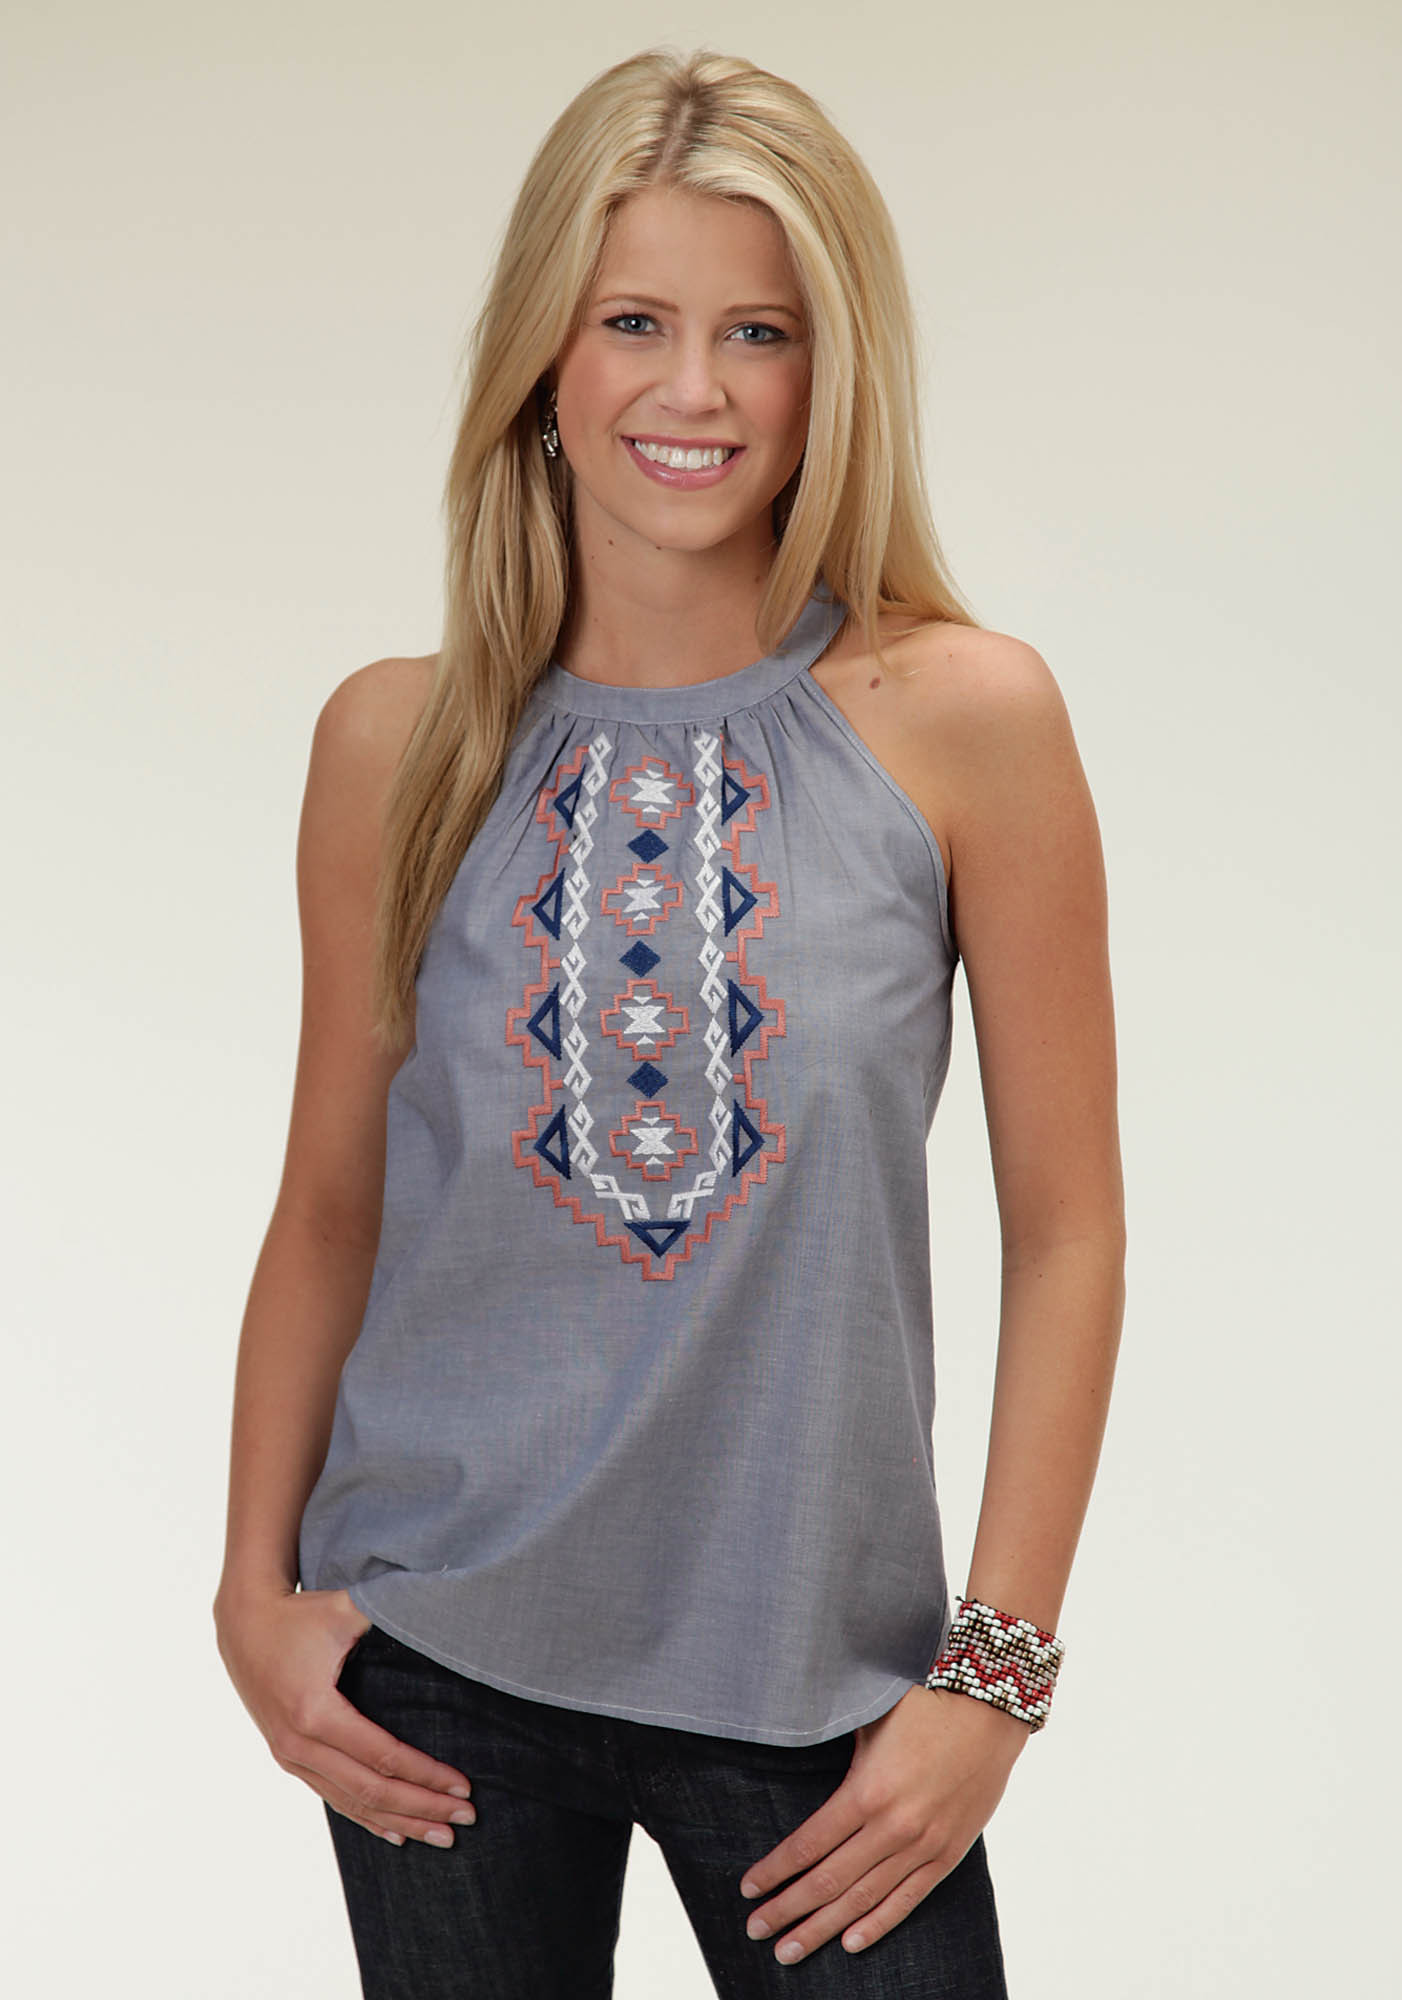 See all results for western tank tops for women. TOPUNDER. Sexy Women Vest Printed Tank Sleeveless Tops Crop Shirt Tee $ 3 4 out of 5 stars 2. Design By Humans. cow skull watercolor Women's Racerback Tank Top $ 23 out of 5 stars 2. TOPUNDER.